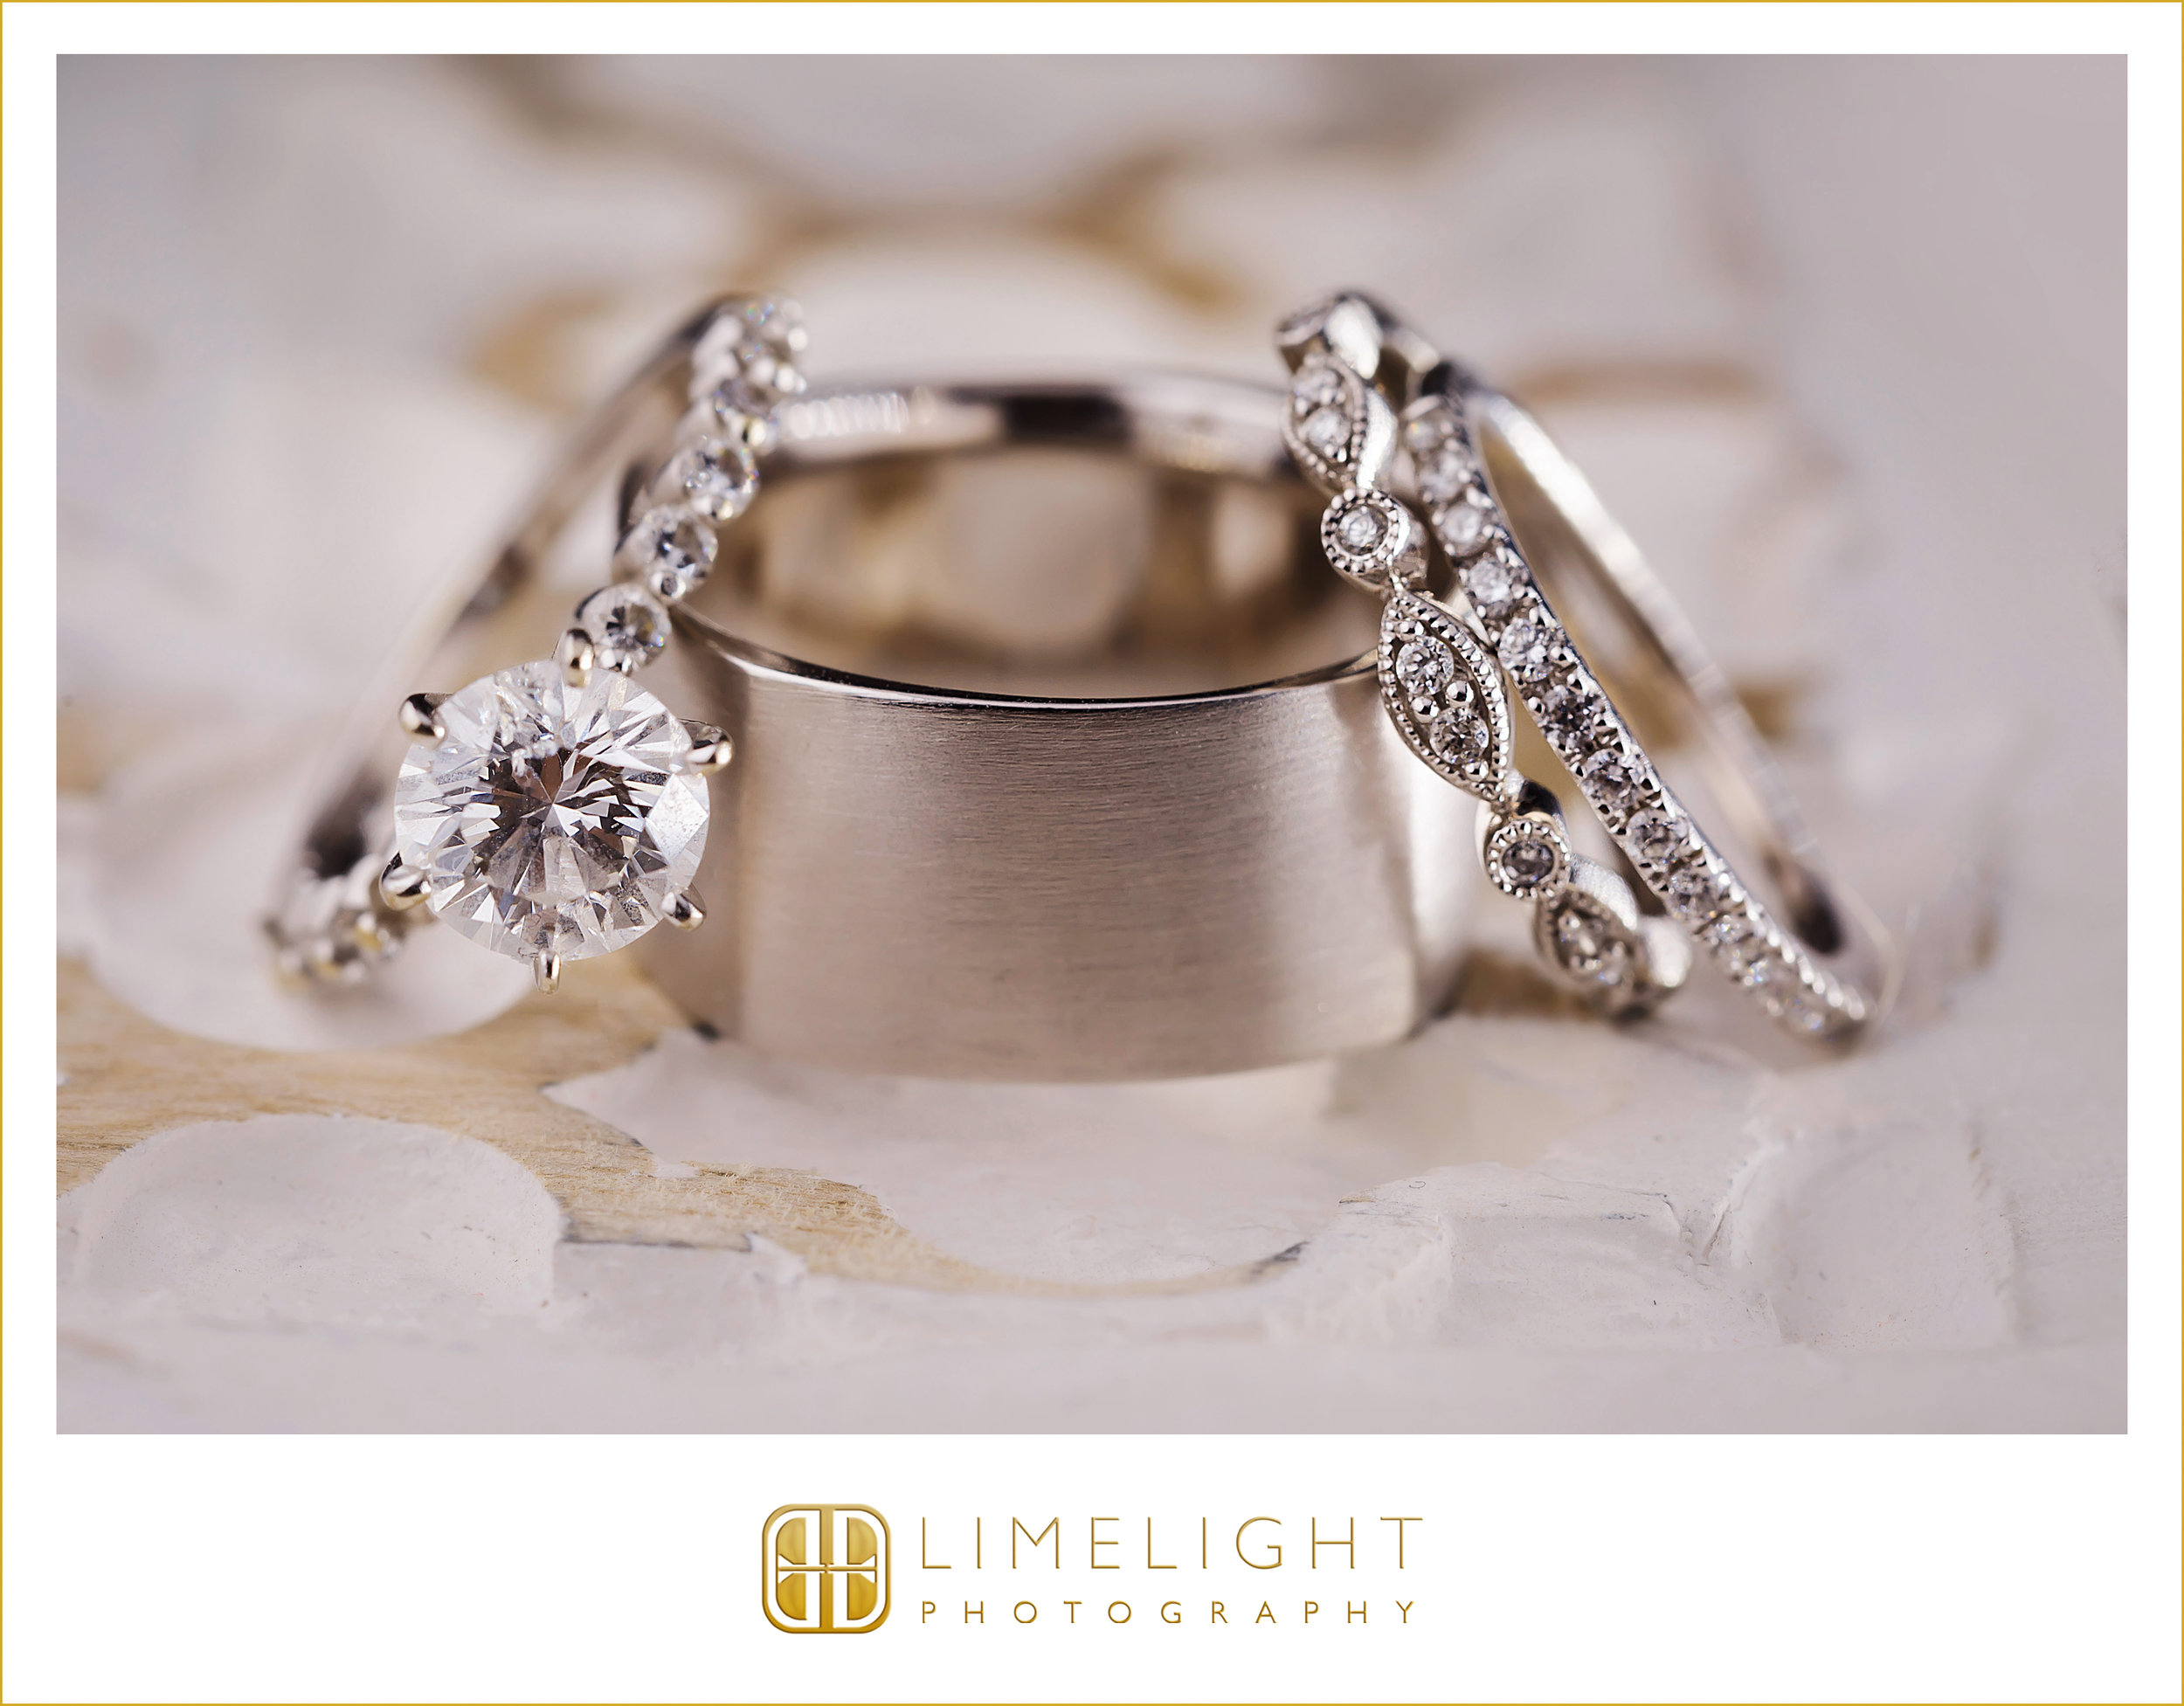 Rings | Mr. & Mrs. | Wedding